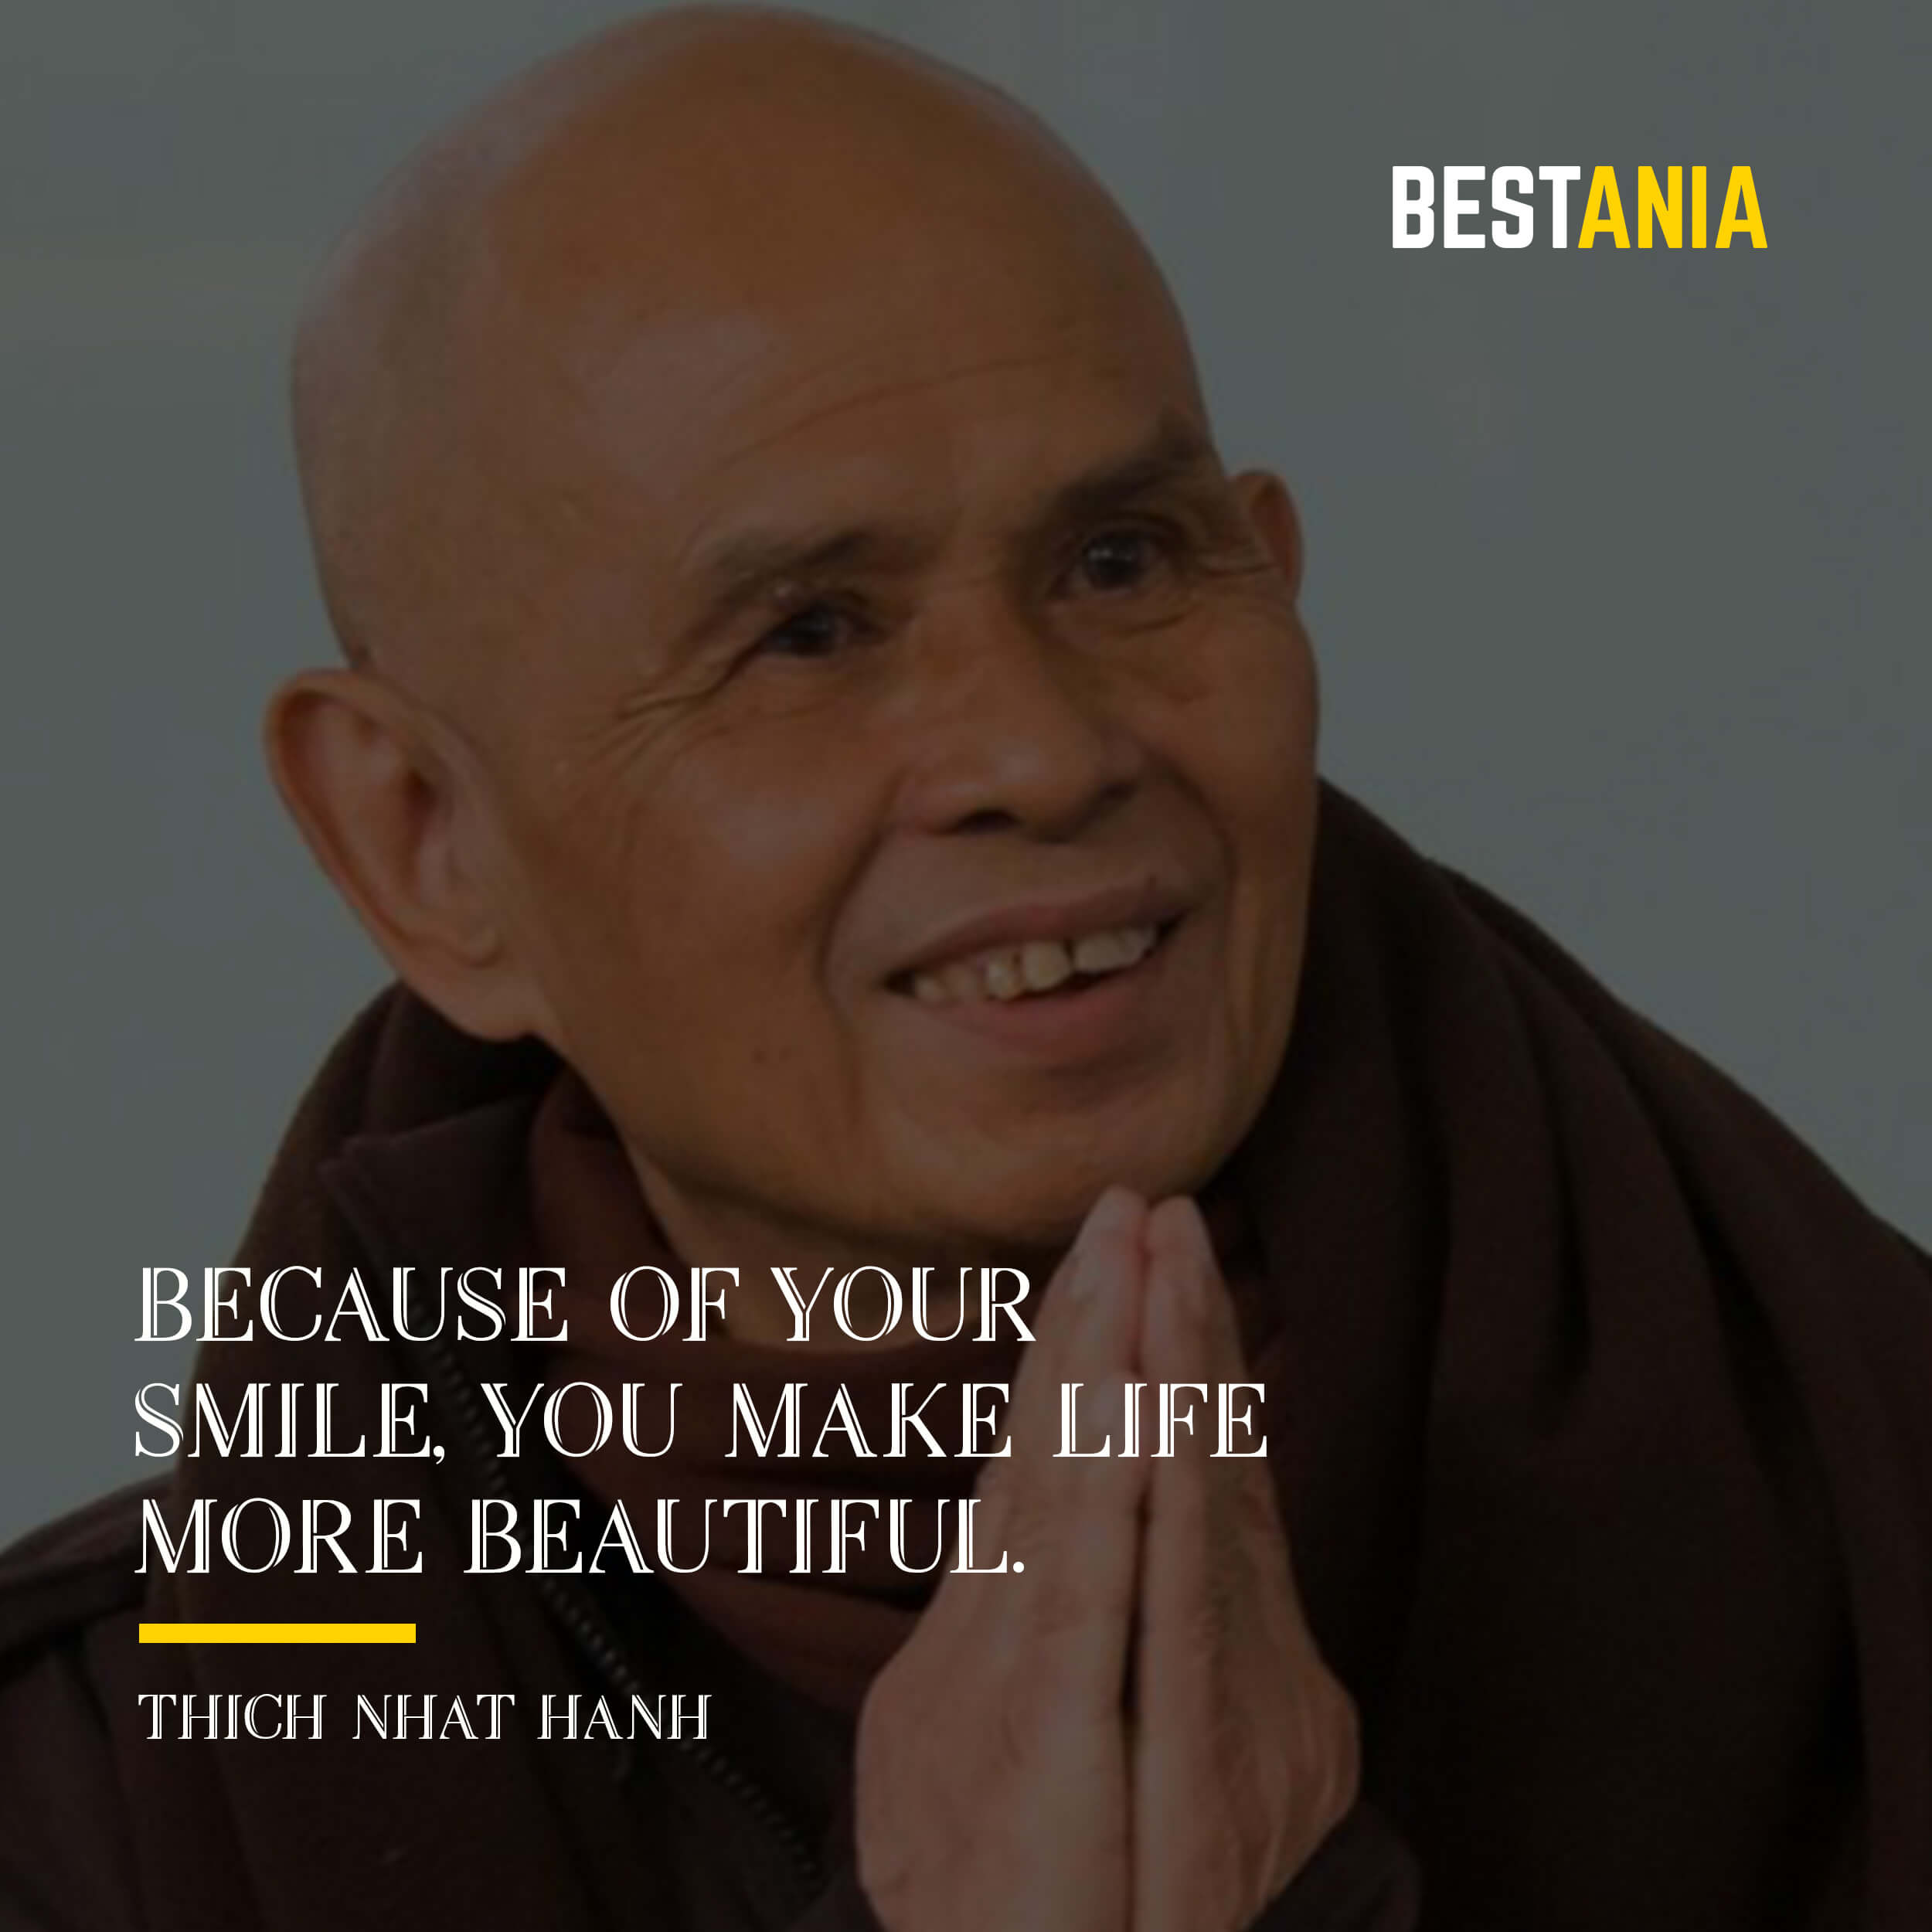 """""""BECAUSE OF YOUR SMILE, YOU MAKE LIFE MORE BEAUTIFUL.""""  THICH NHAT HANH"""